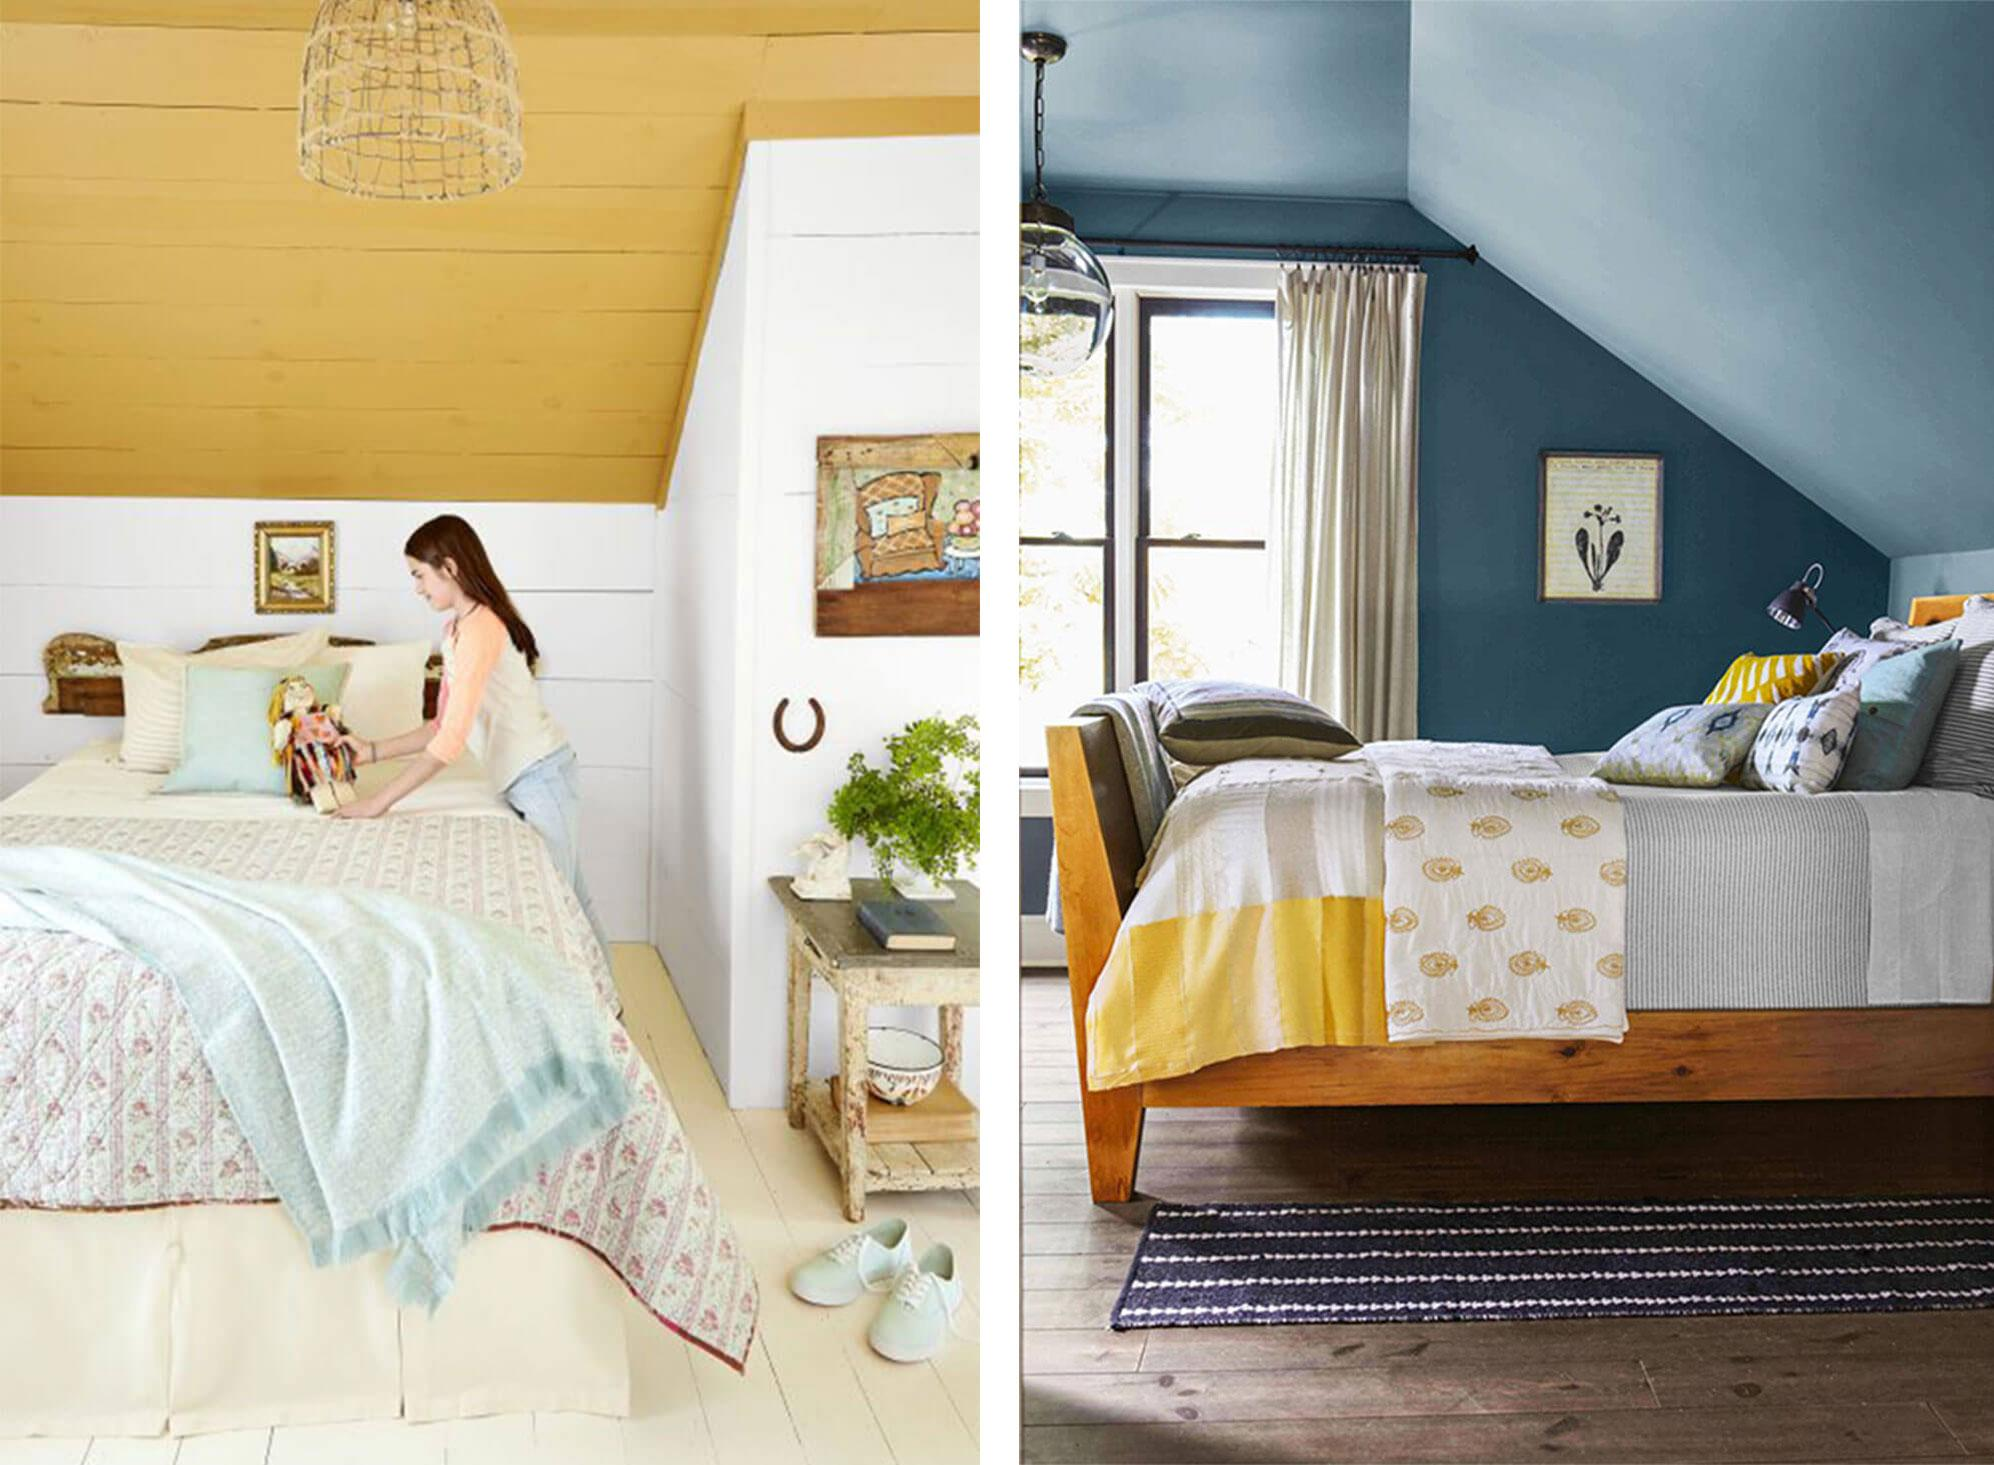 Ideas for bedroom walls and ceiling painted blue.